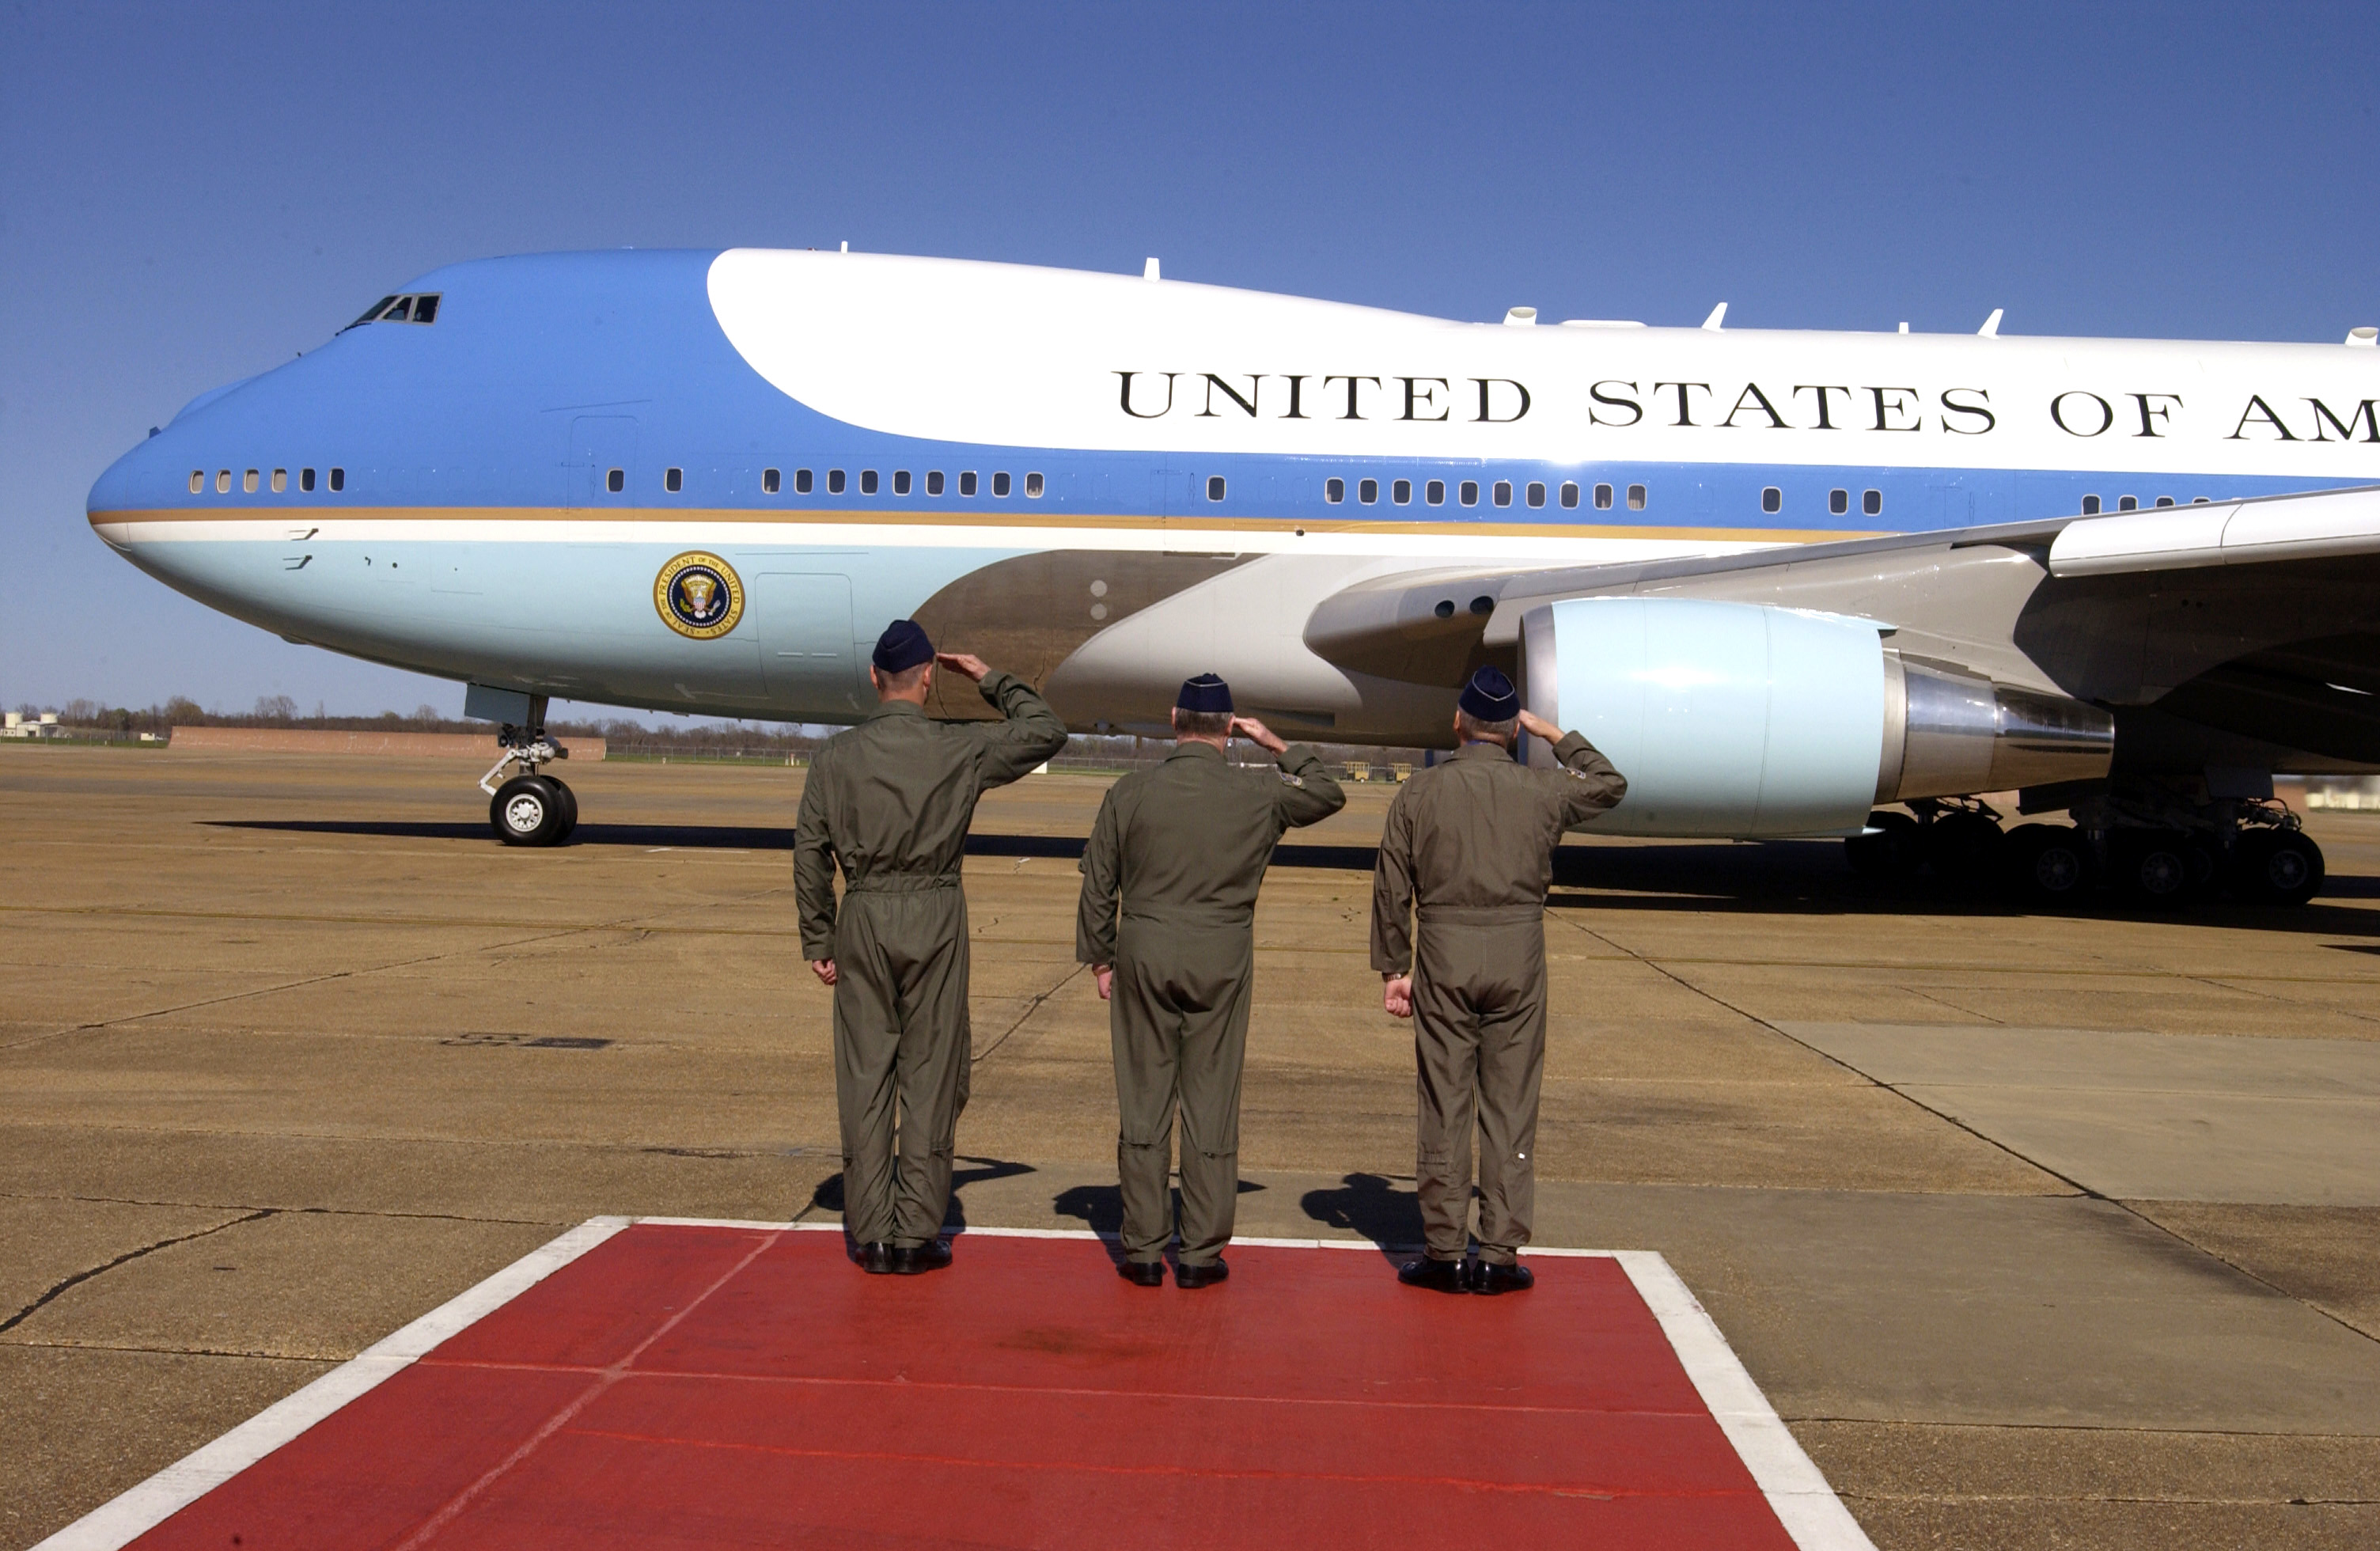 Air Force One - VC-25A. (U.S. Air Force photo by Master Sgt. Michael A. Kaplan)